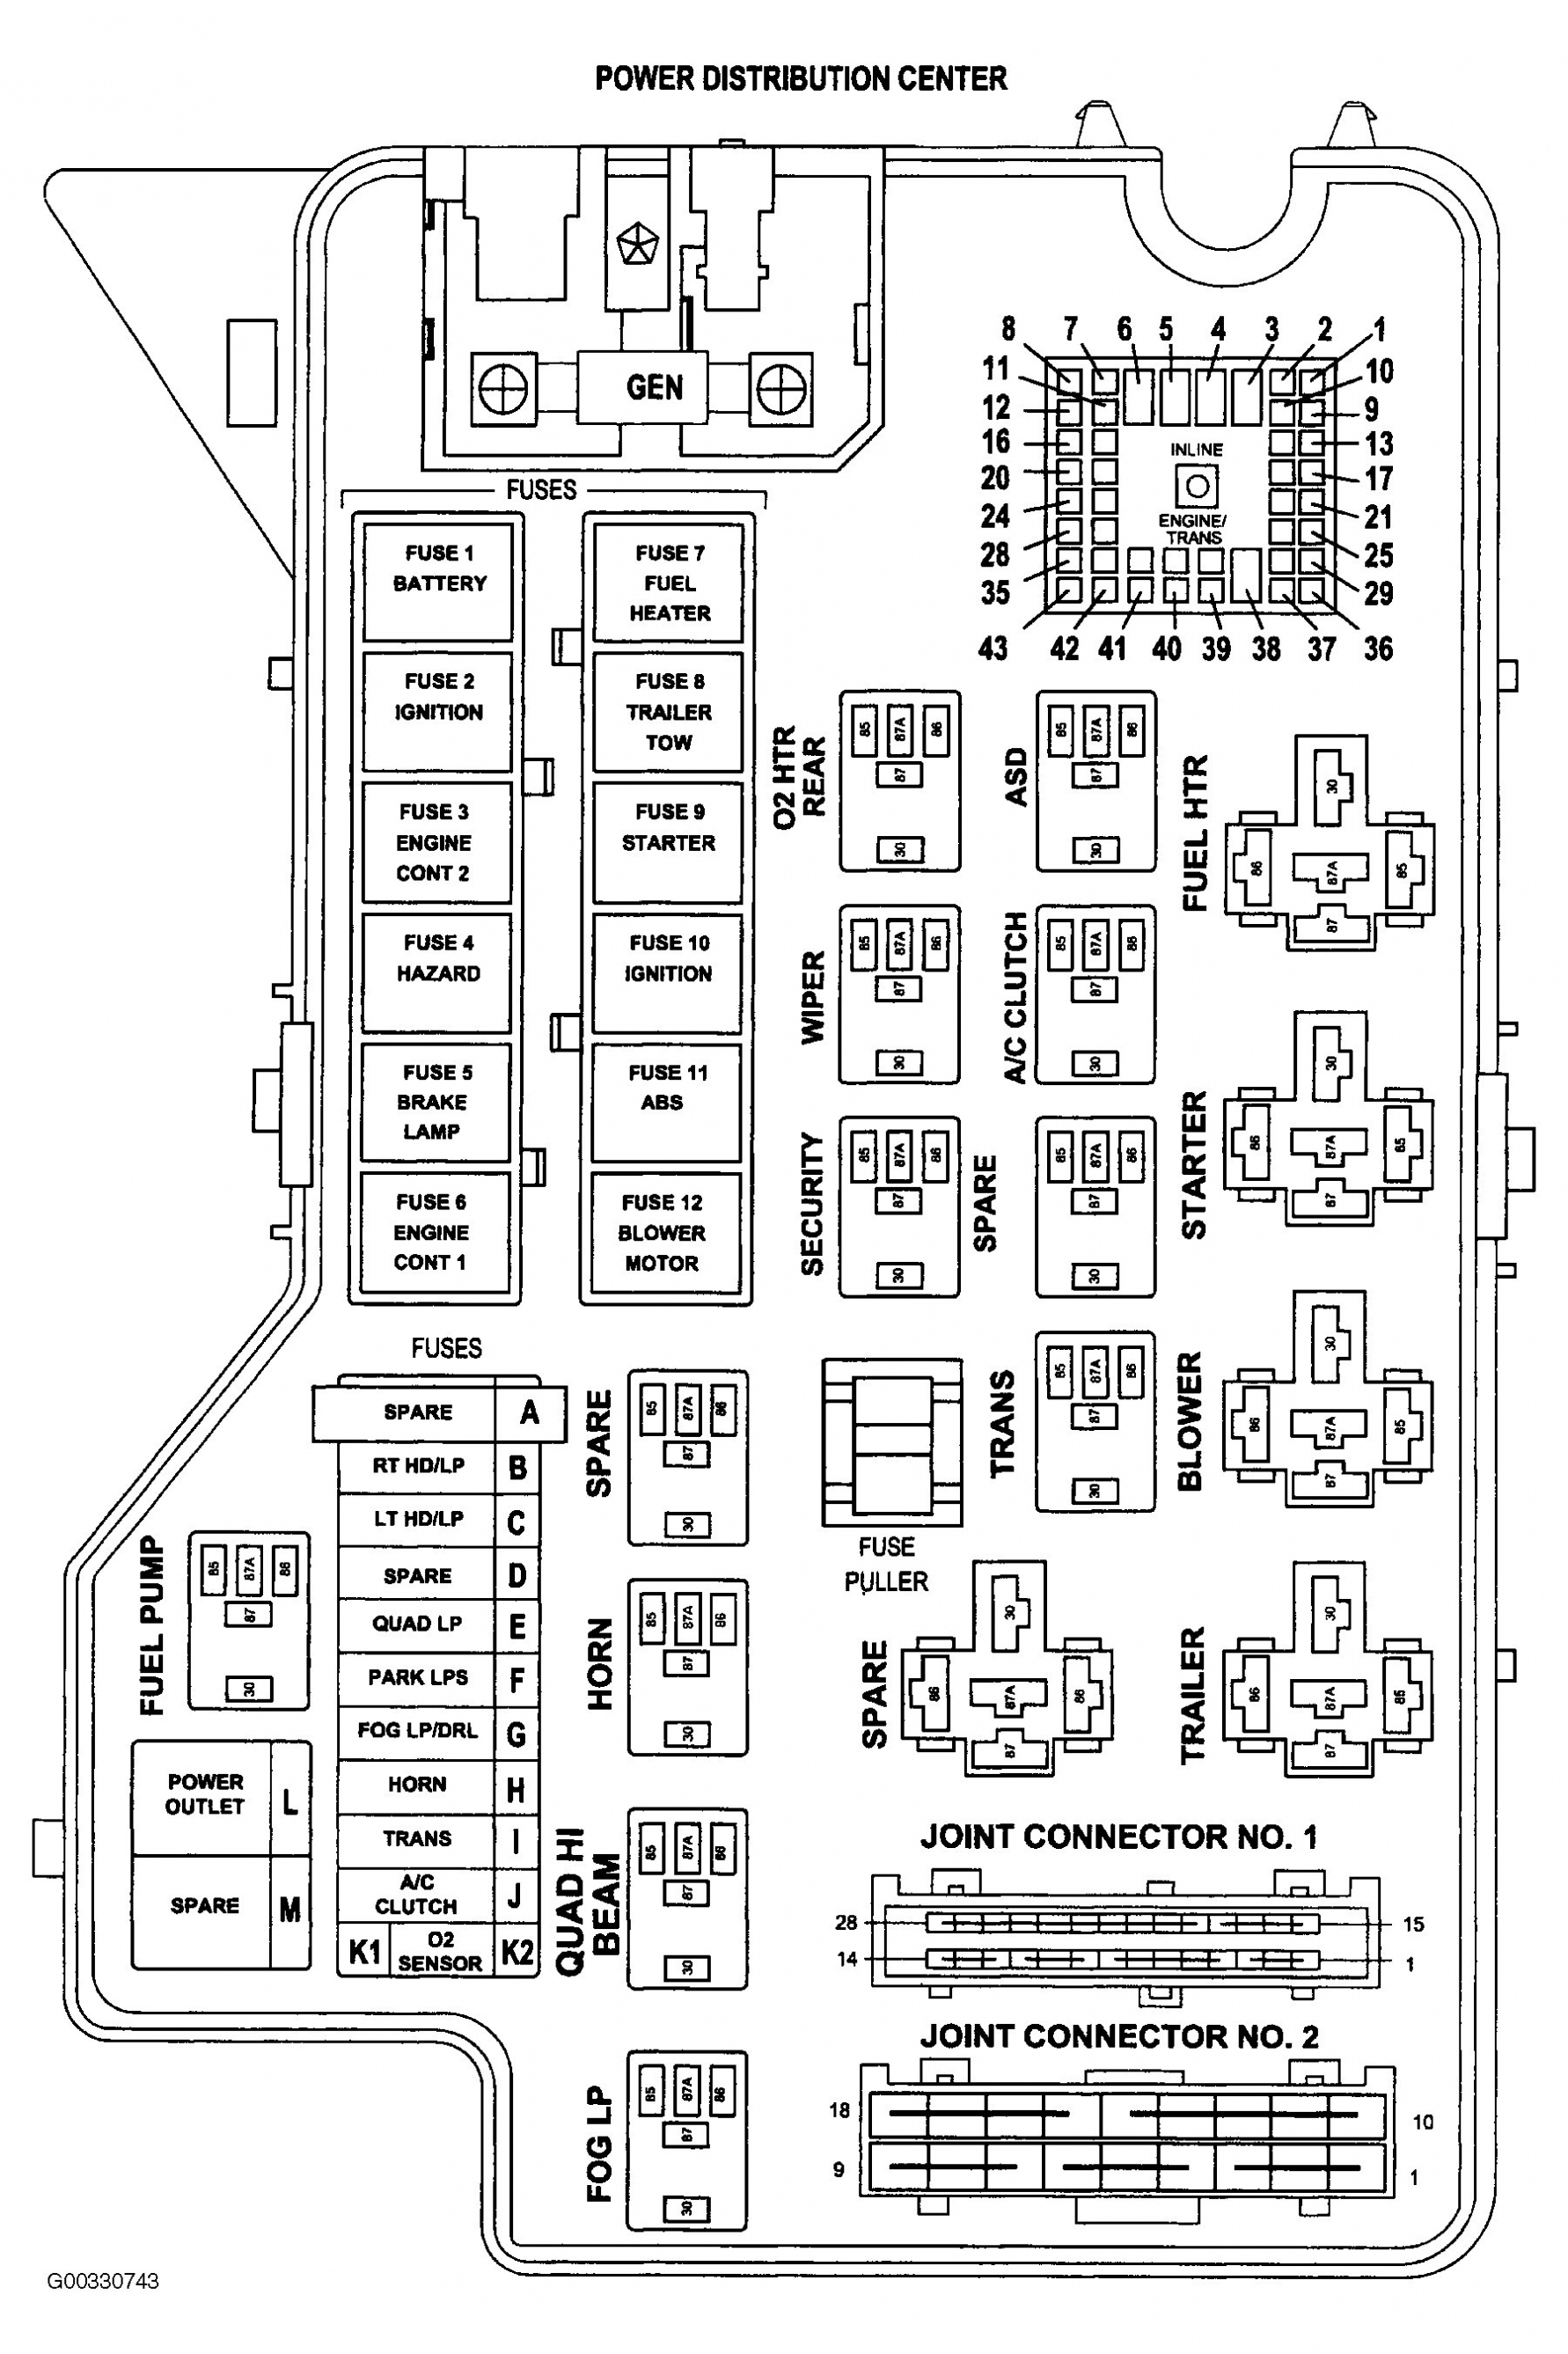 2004 Dodge Ram Fuse Box - Wiring Diagram Data - Dodge Ram 1500 Wiring Diagram